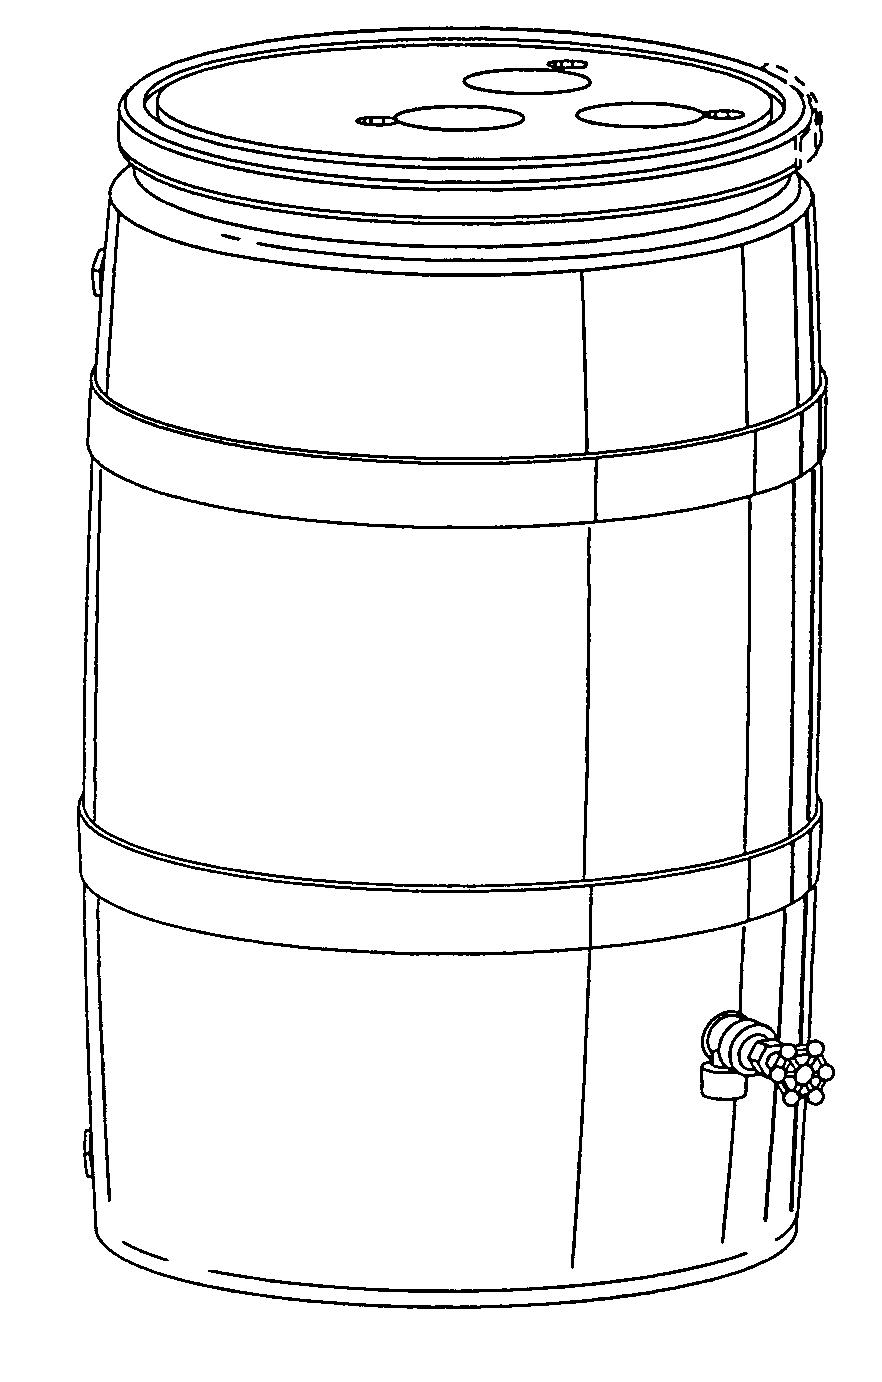 side view perspective drawing